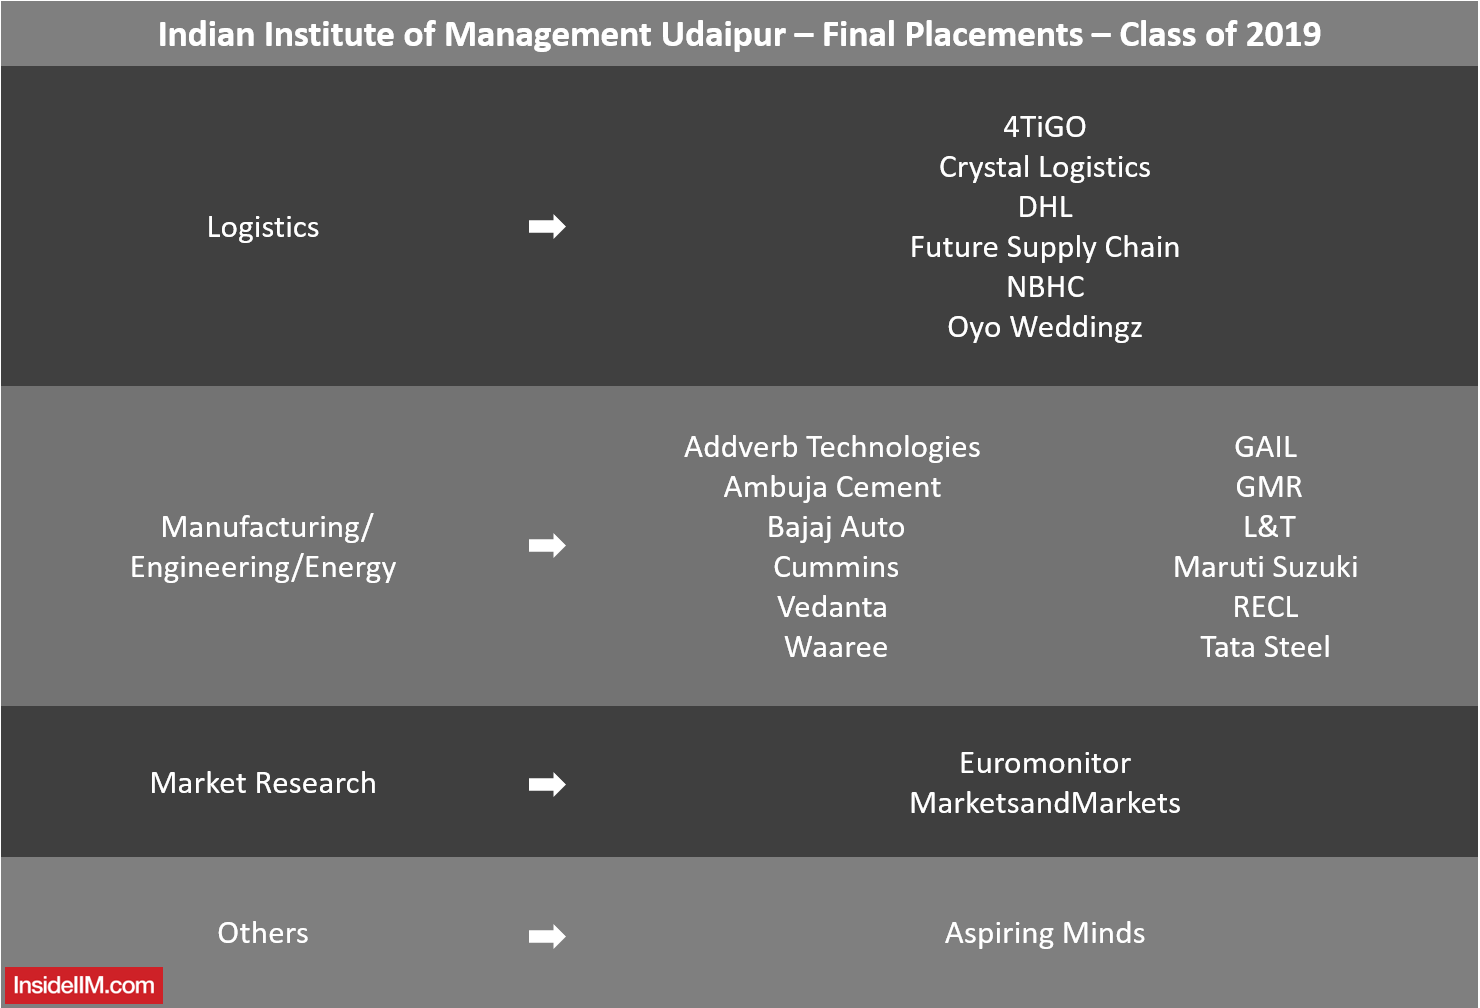 IIM Udaipur Placements 2019 - Companies: Logistics, Manufacturing, Market Research